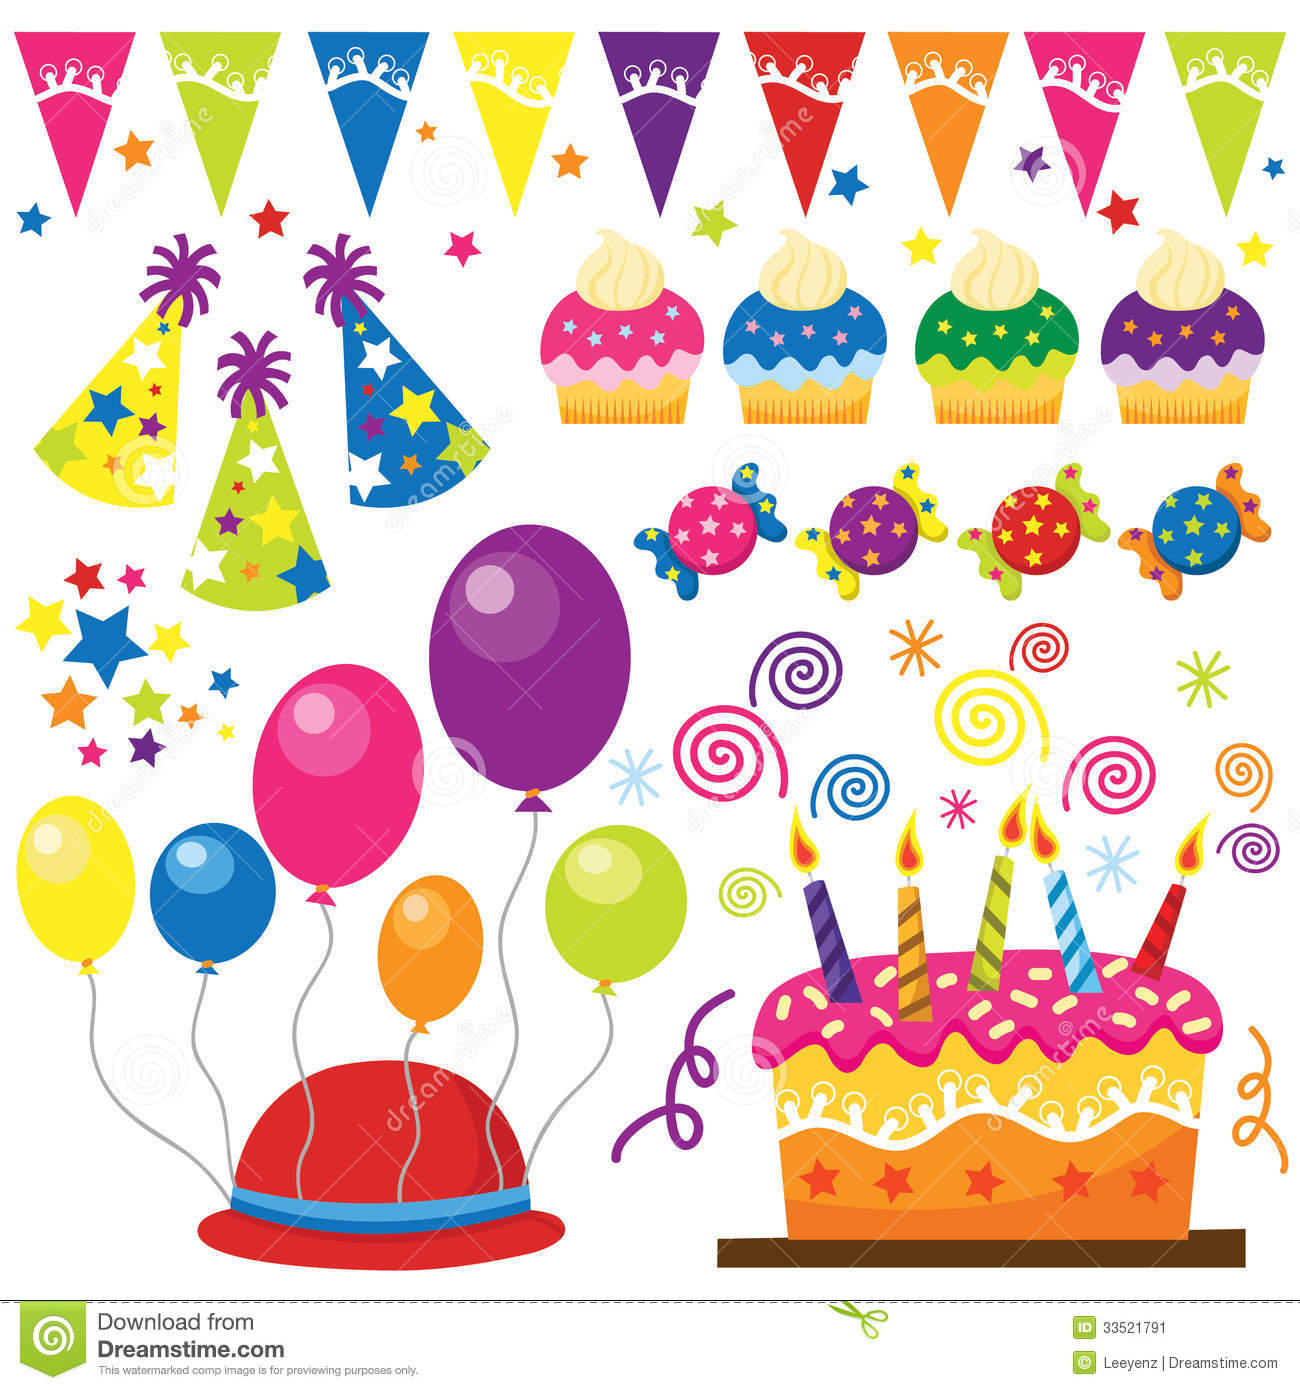 surprise birthday clipart ; surprise-birthday-party-vector-illustration-33521791